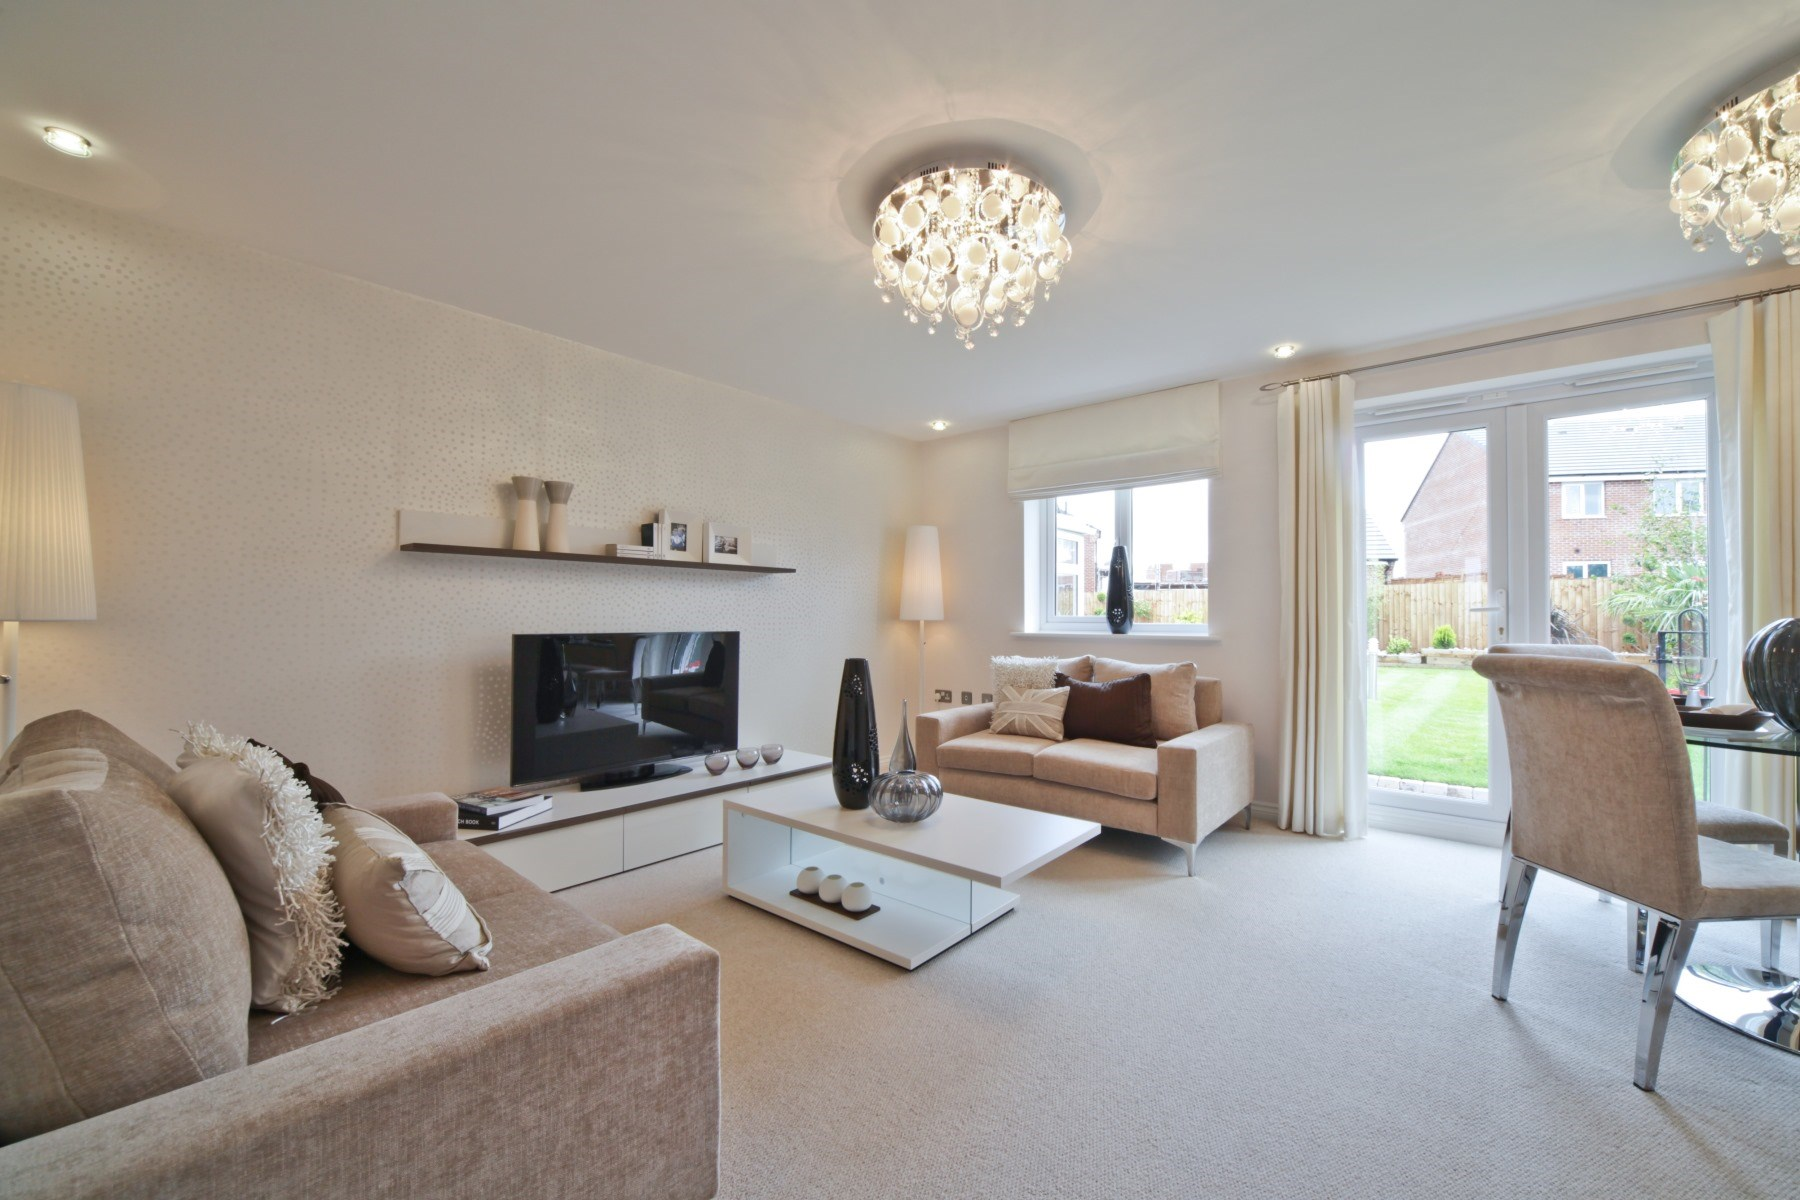 show home living room ideas the vistas new homes in heywood wimpey 23474